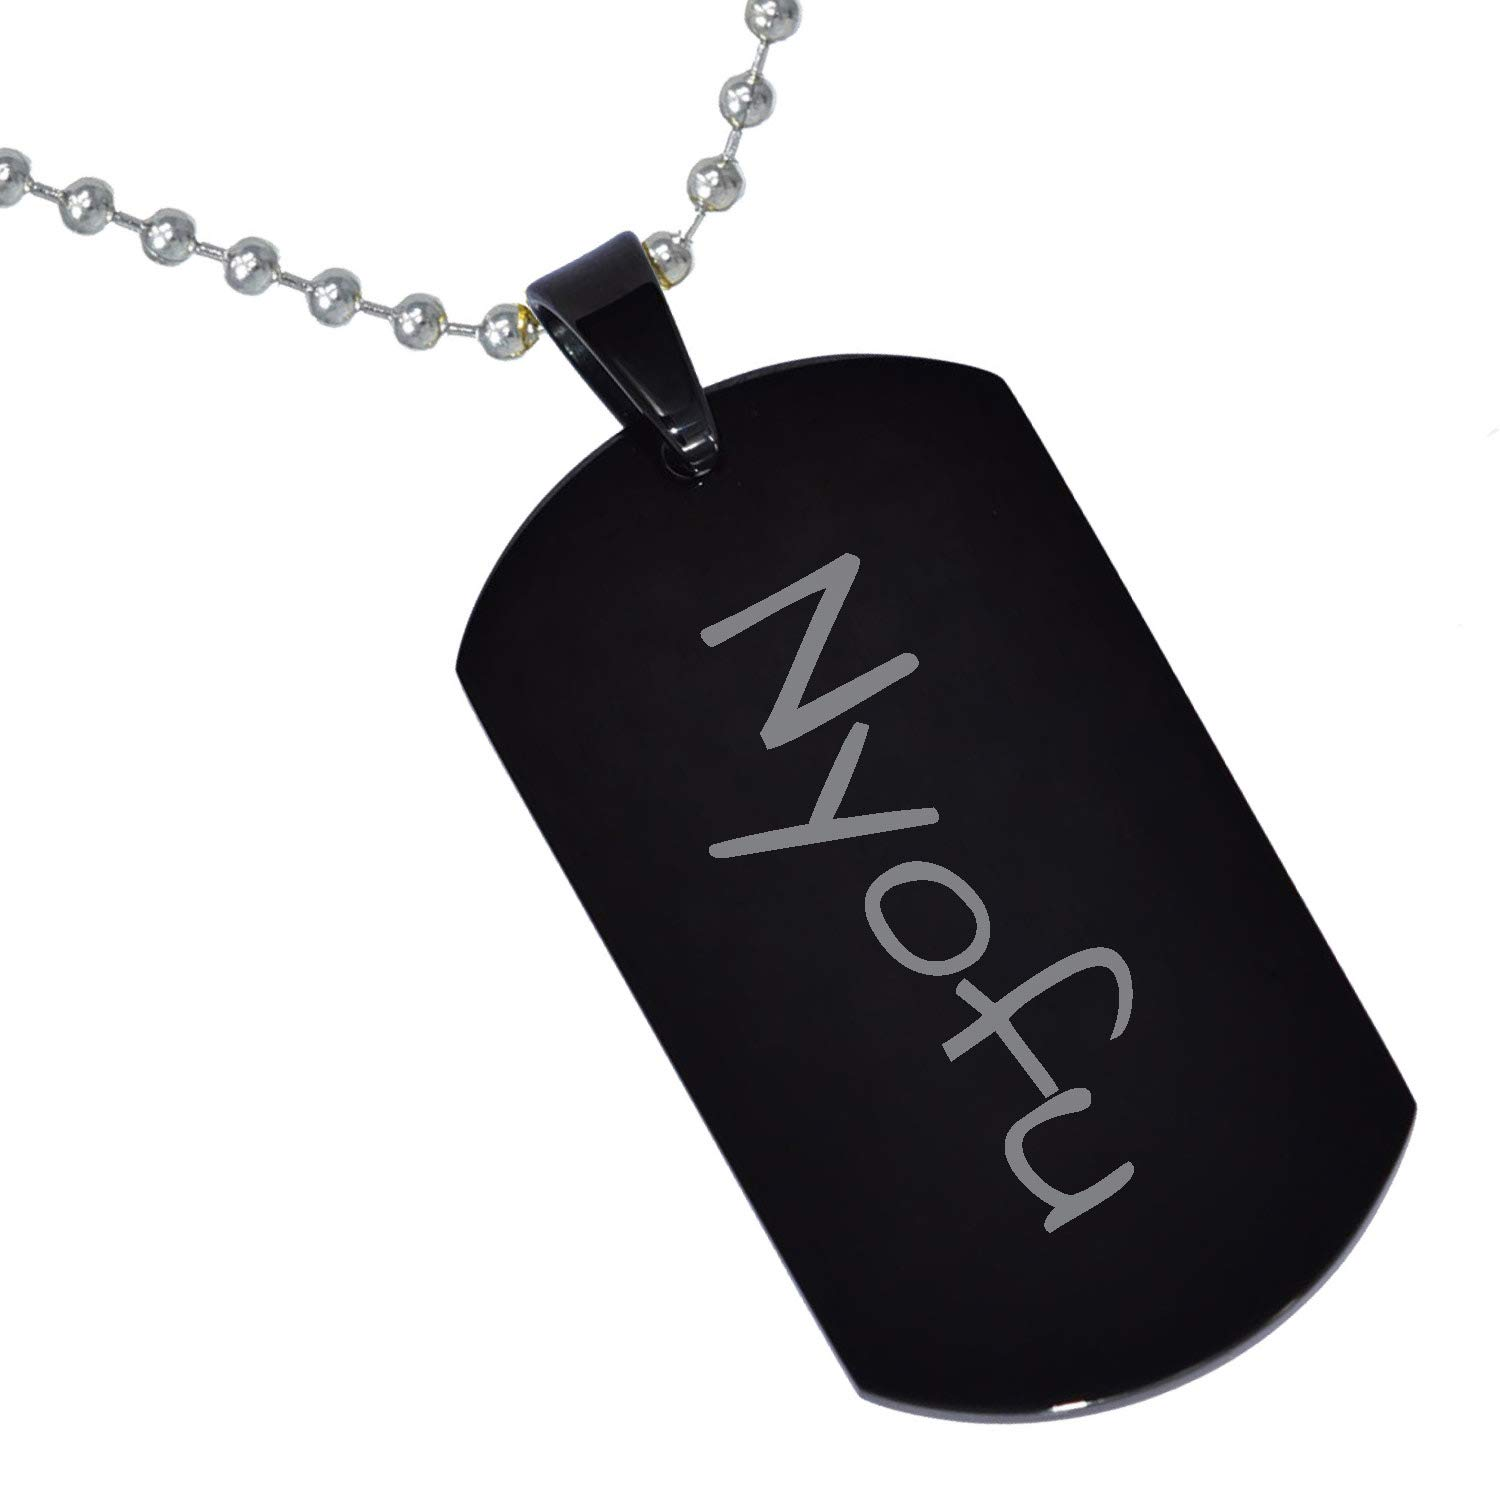 Stainless Steel Silver Gold Black Rose Gold Color Baby Name Nyofu Engraved Personalized Gifts For Son Daughter Boyfriend Girlfriend Initial Customizable Pendant Necklace Dog Tags 24 Ball Chain